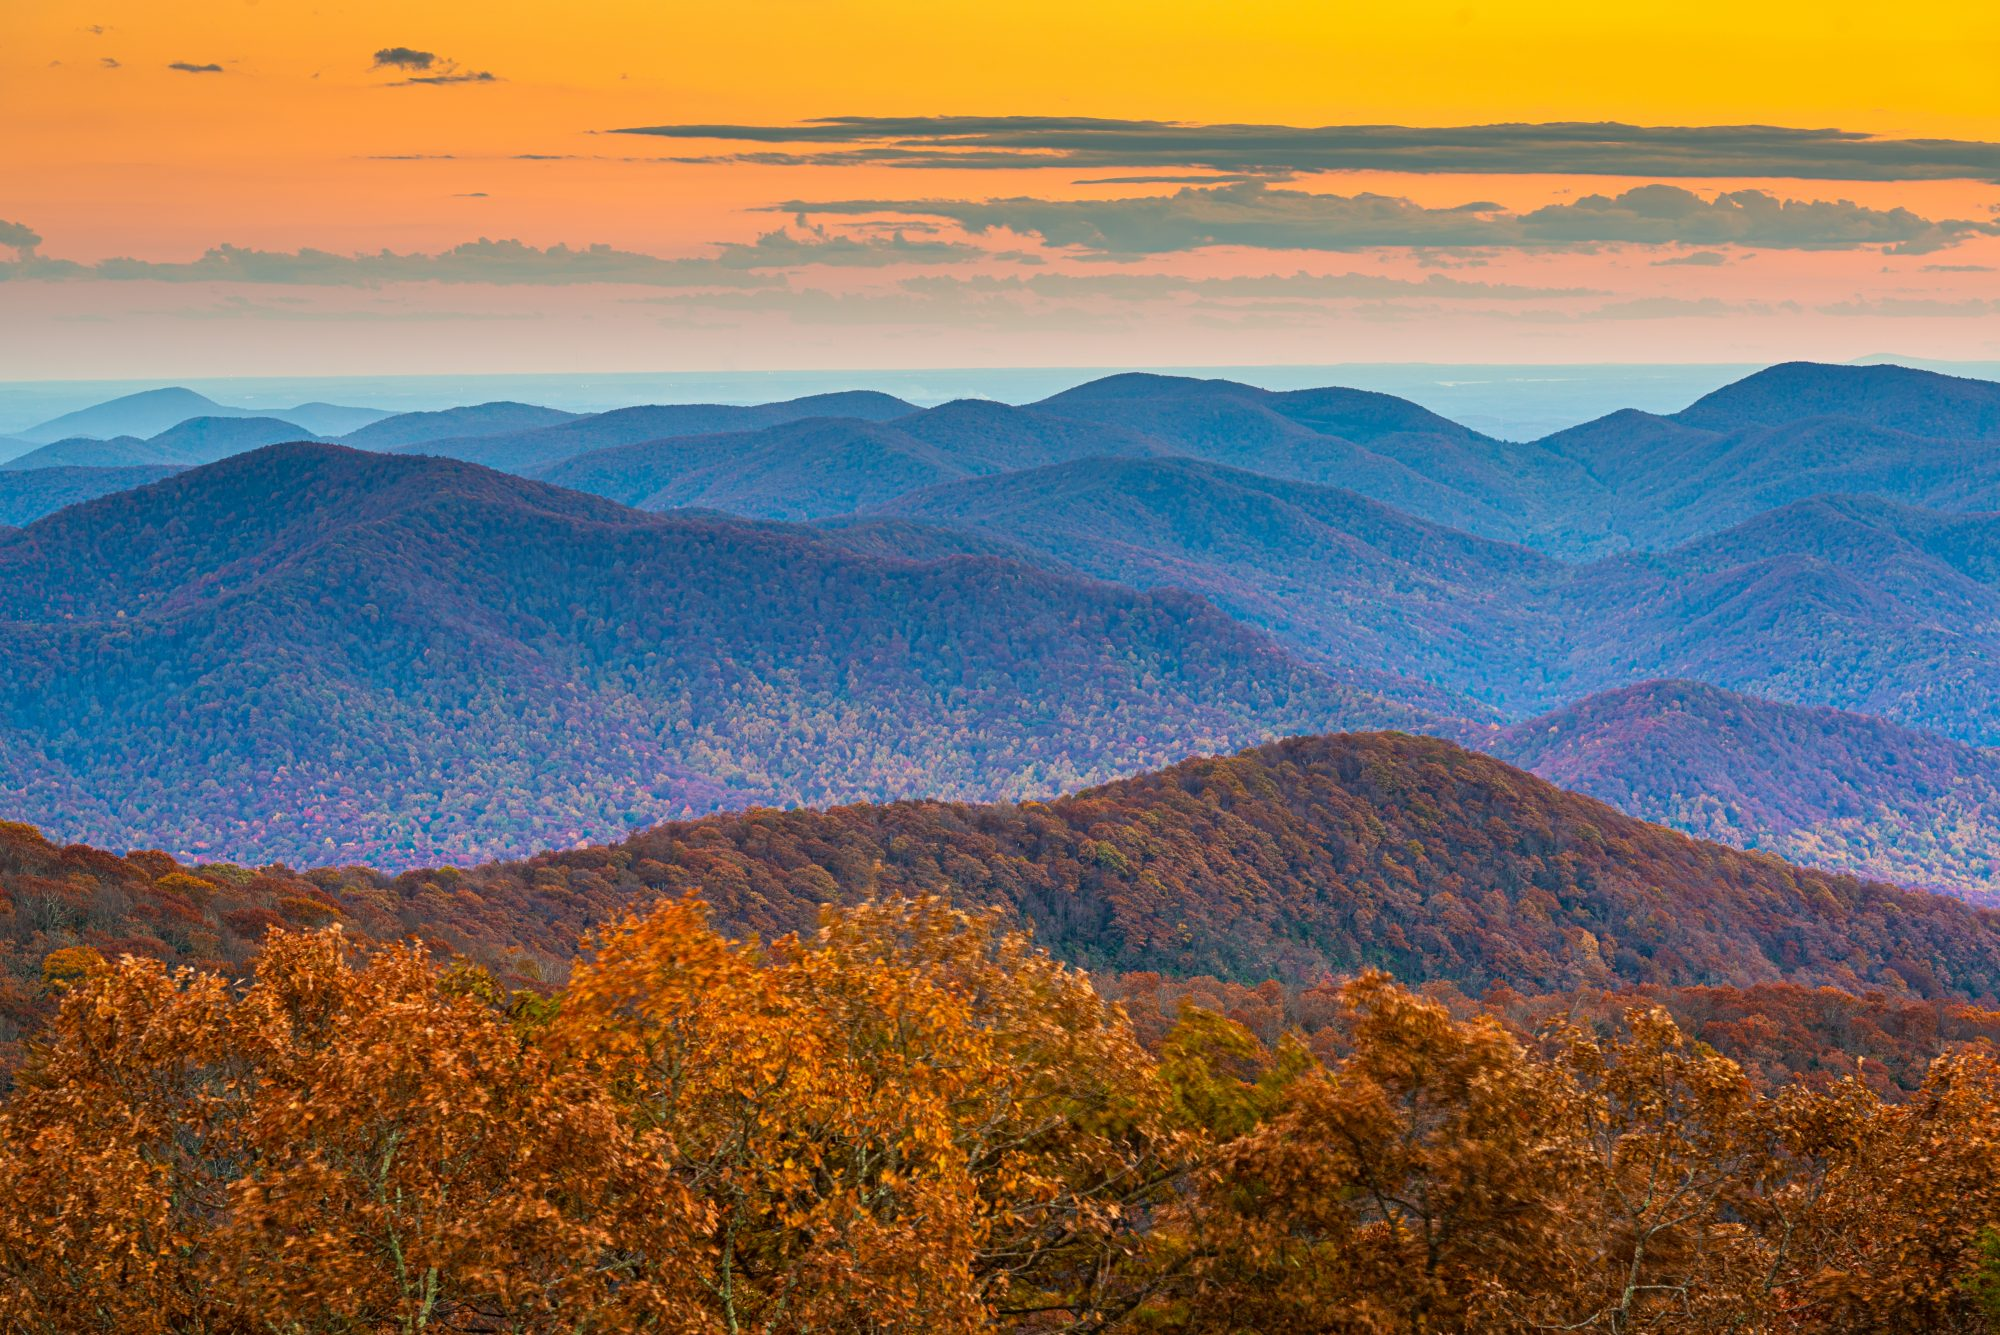 Brasstown Bald View of Blue Ridge Mountains at Sunset in North Georgia